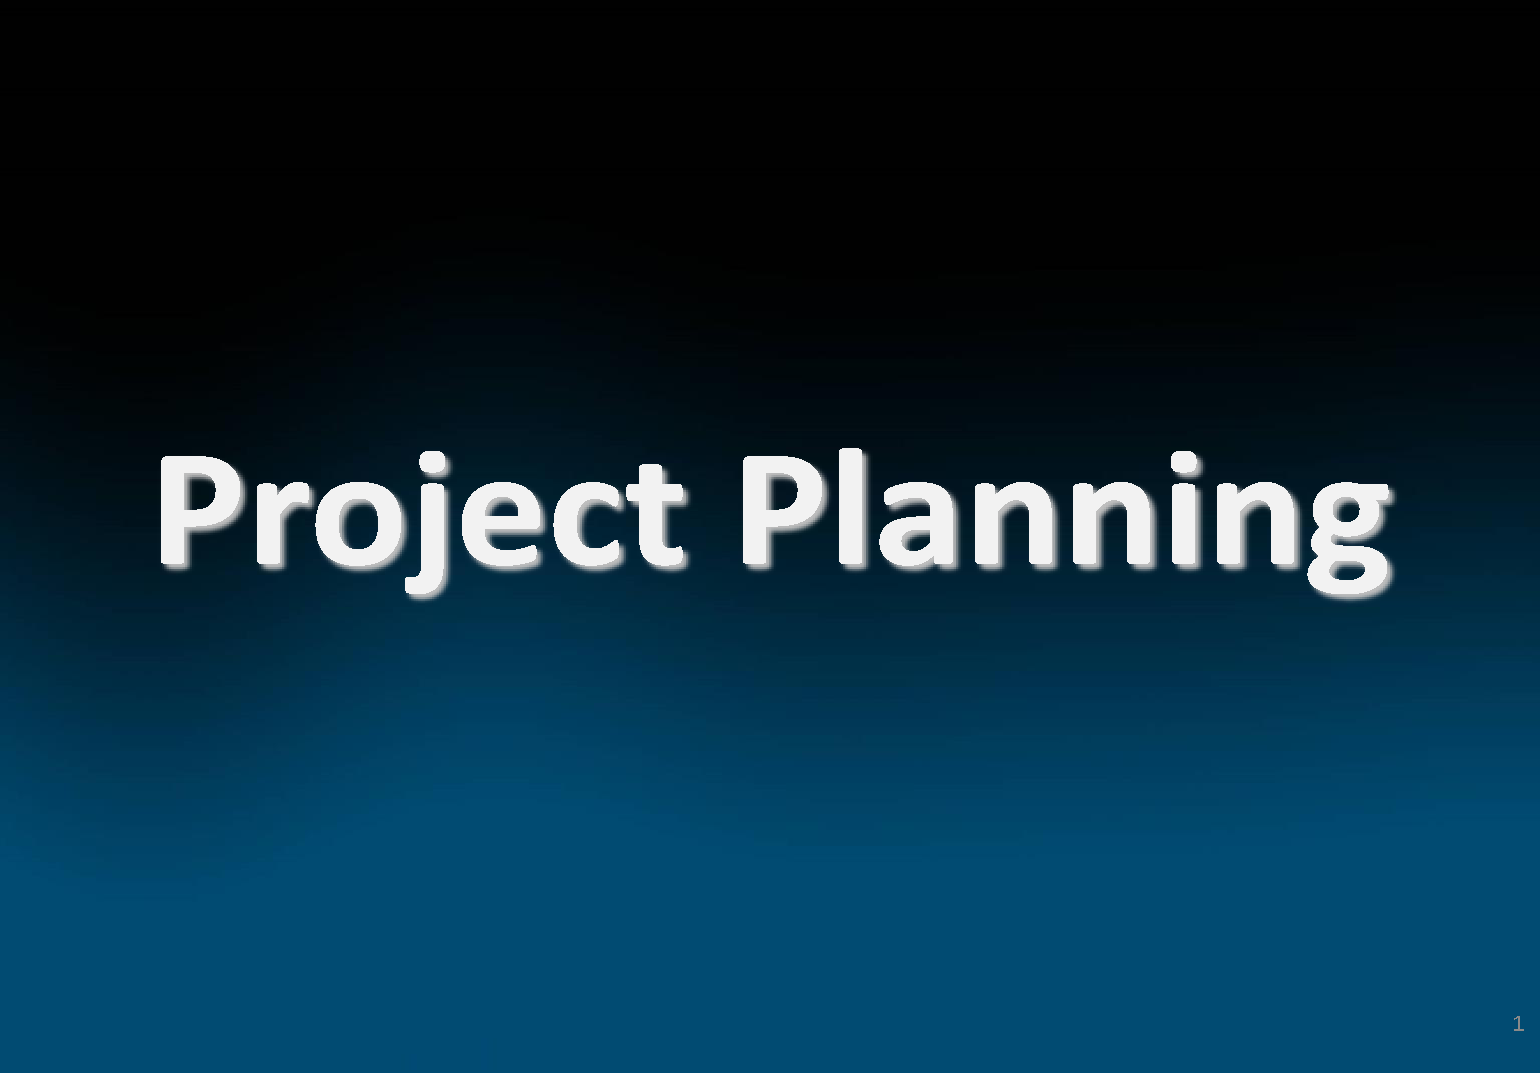 Introduction to Project Planning, Project Life cycle